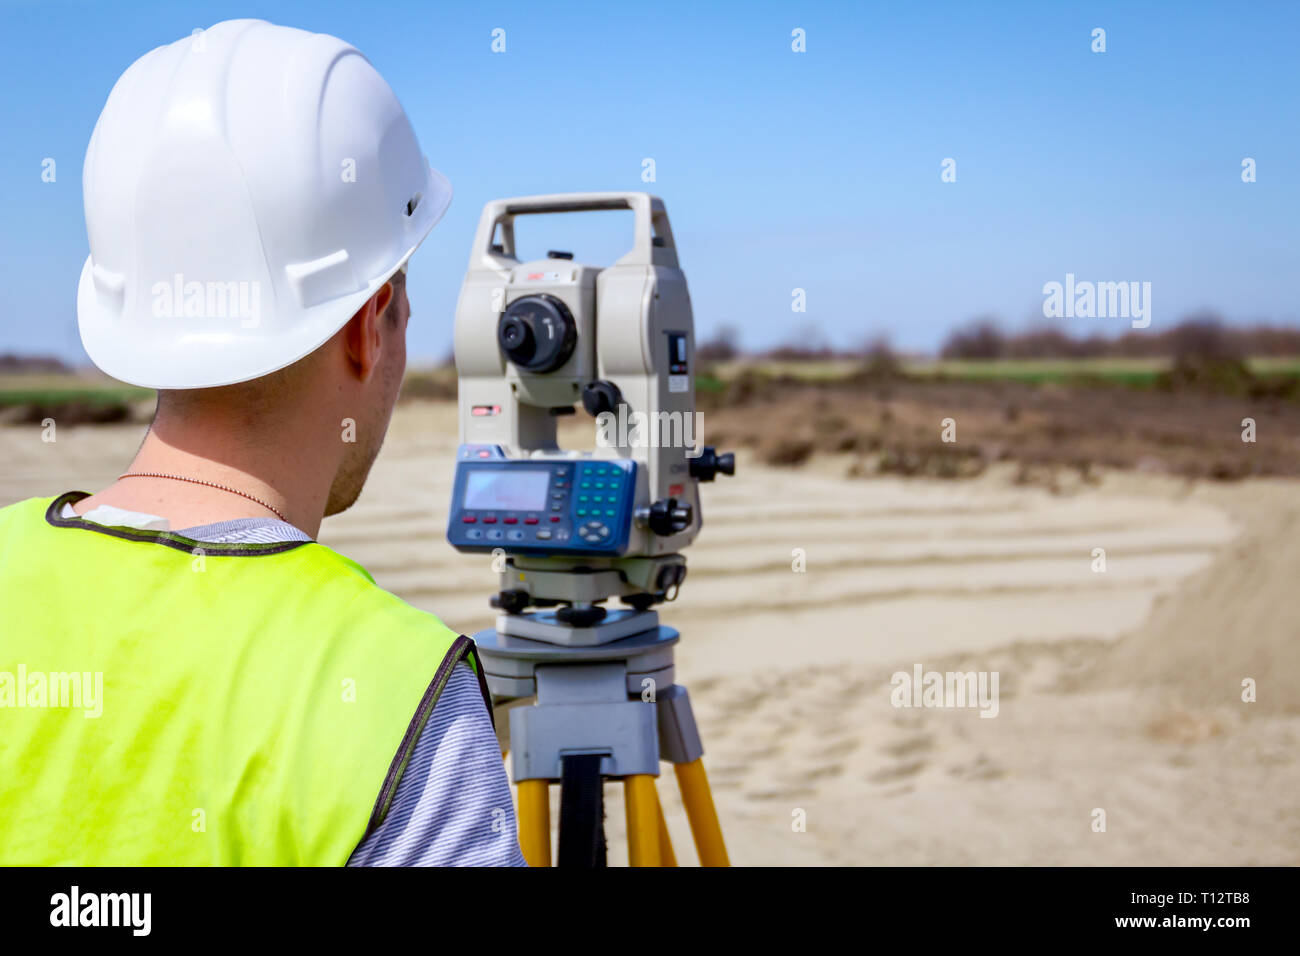 Surveyor engineer is measuring level on construction site. Surveyors ensure precise measurements before undertaking large construction projects. Stock Photo